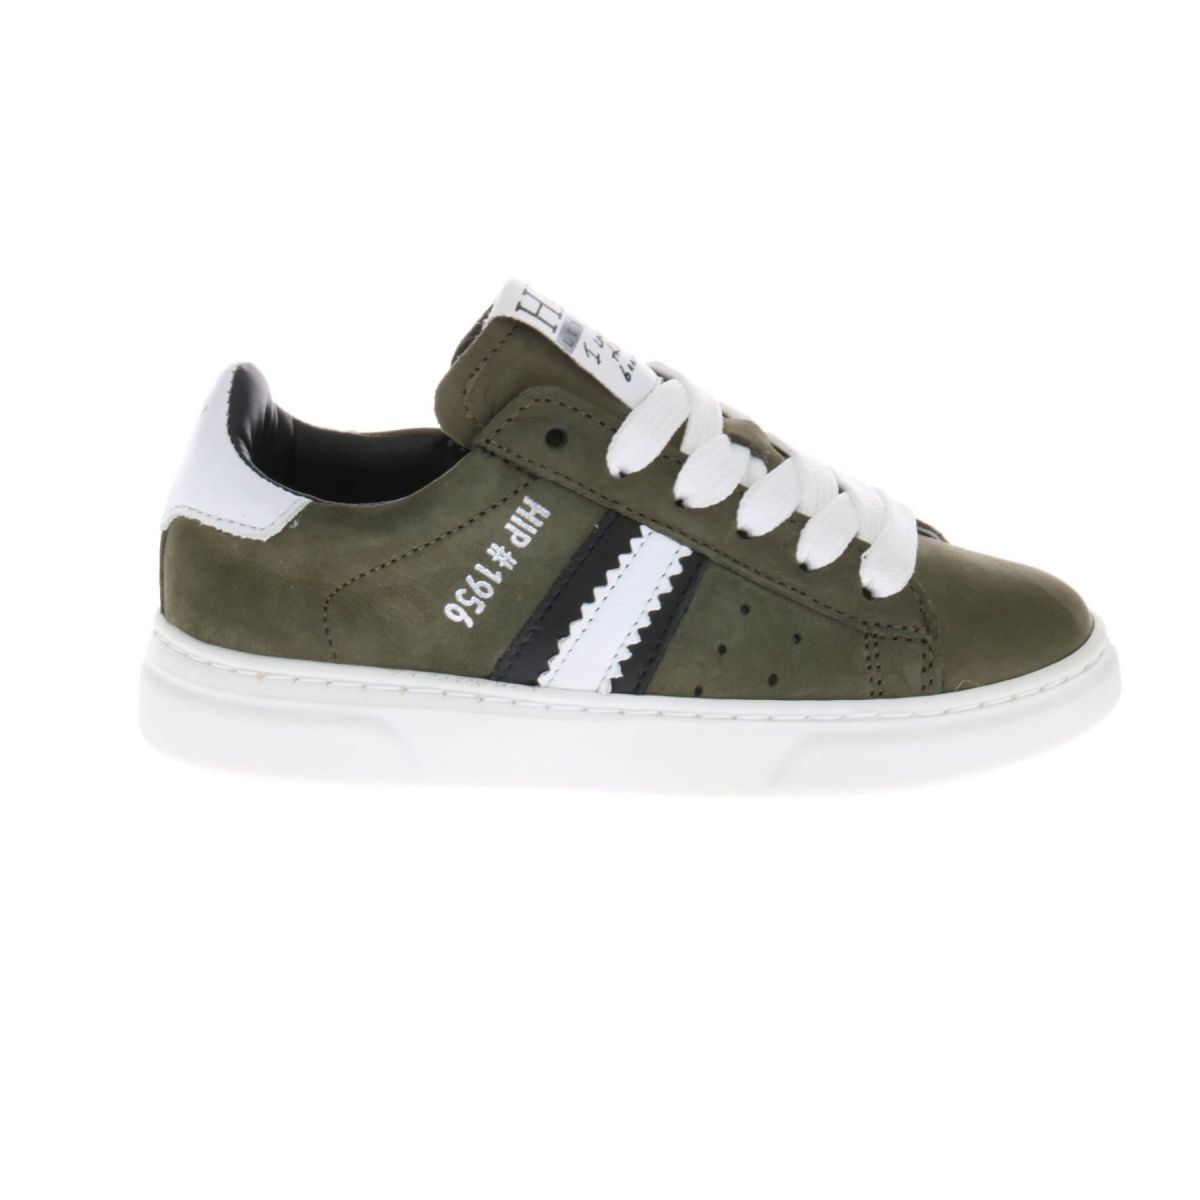 HIP H1272 Sneakers Groen Wit